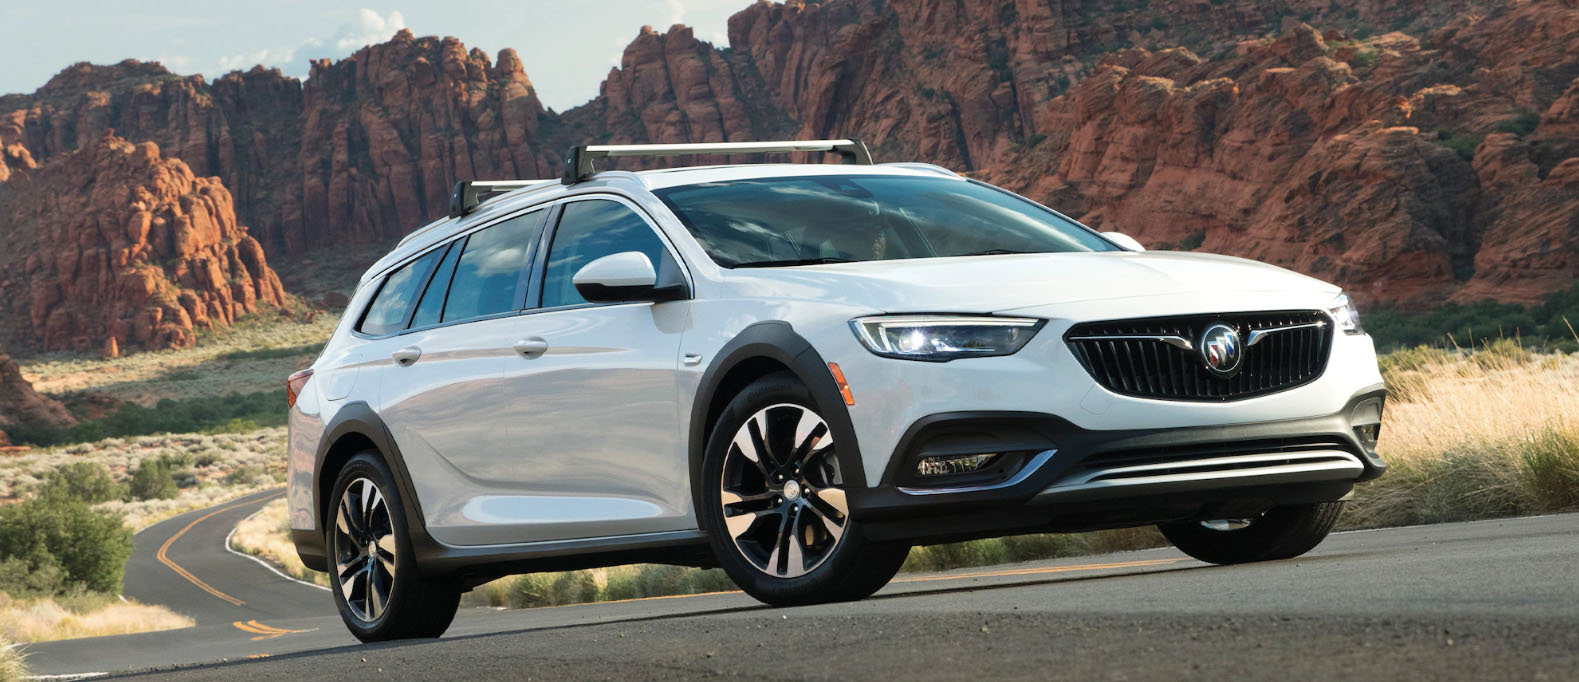 2020 Buick Regal TourX Safety Main Img